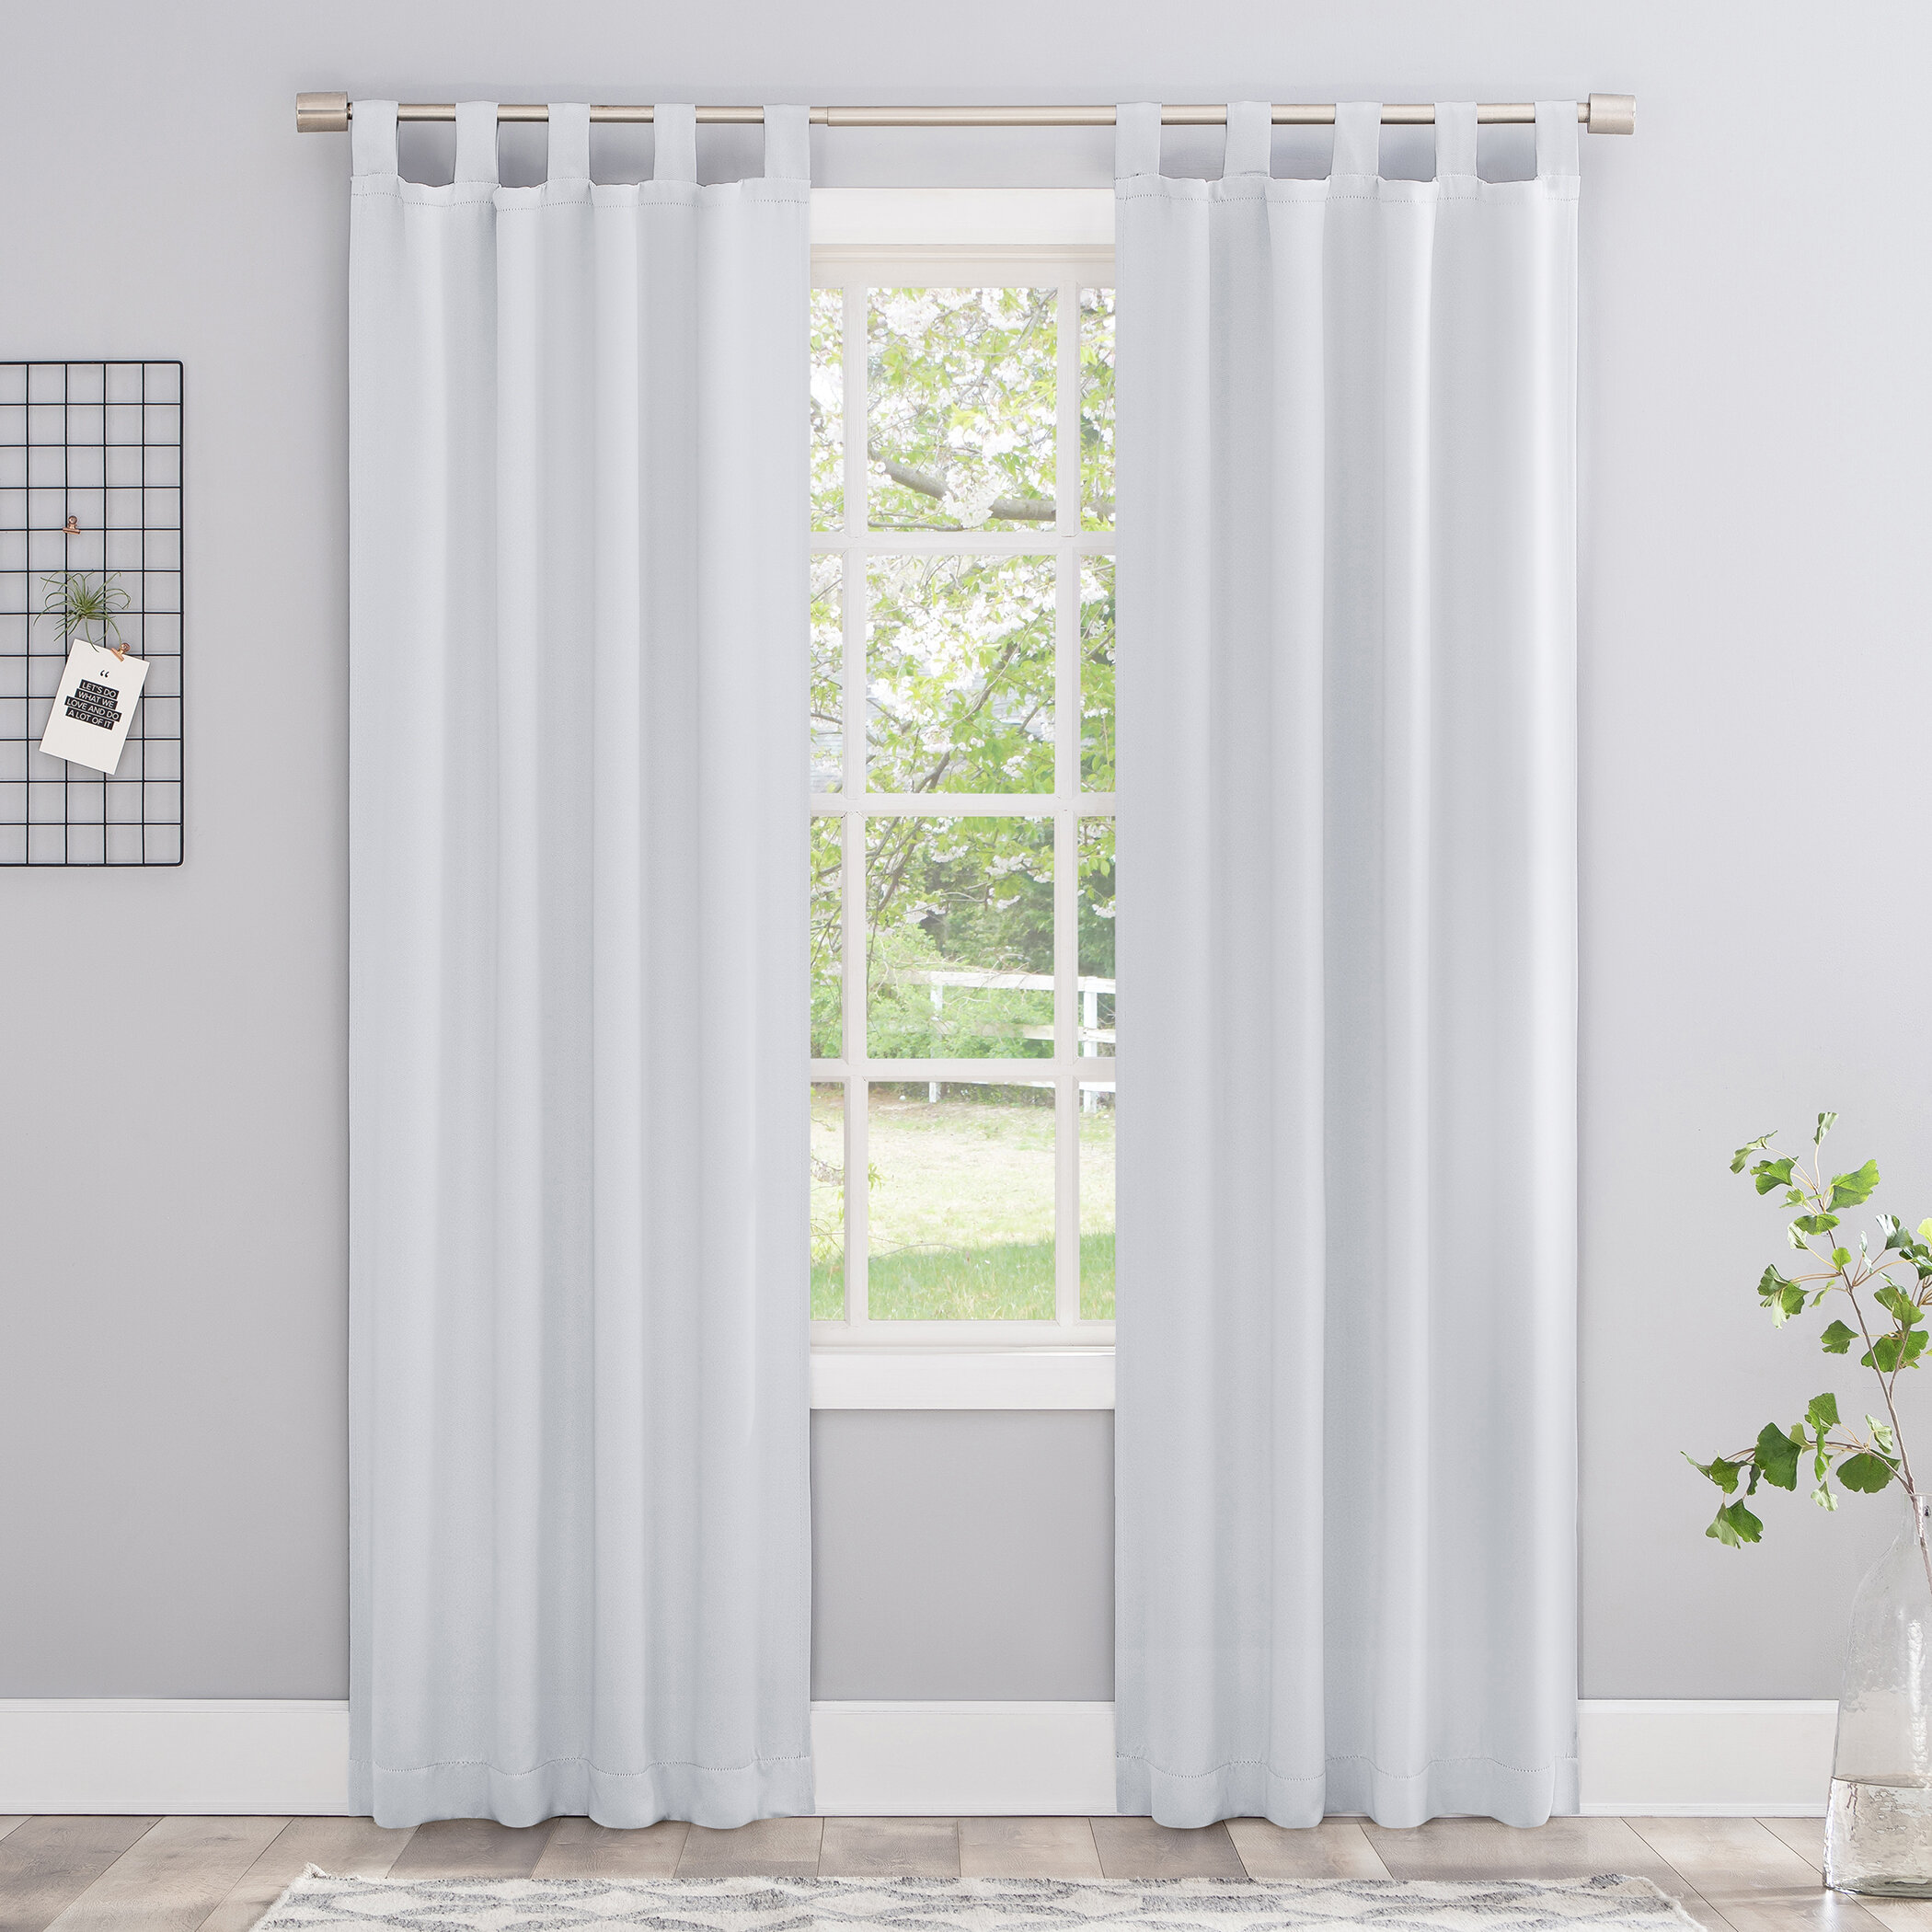 Bedroom White Curtains Drapes Free Shipping Over 35 Wayfair